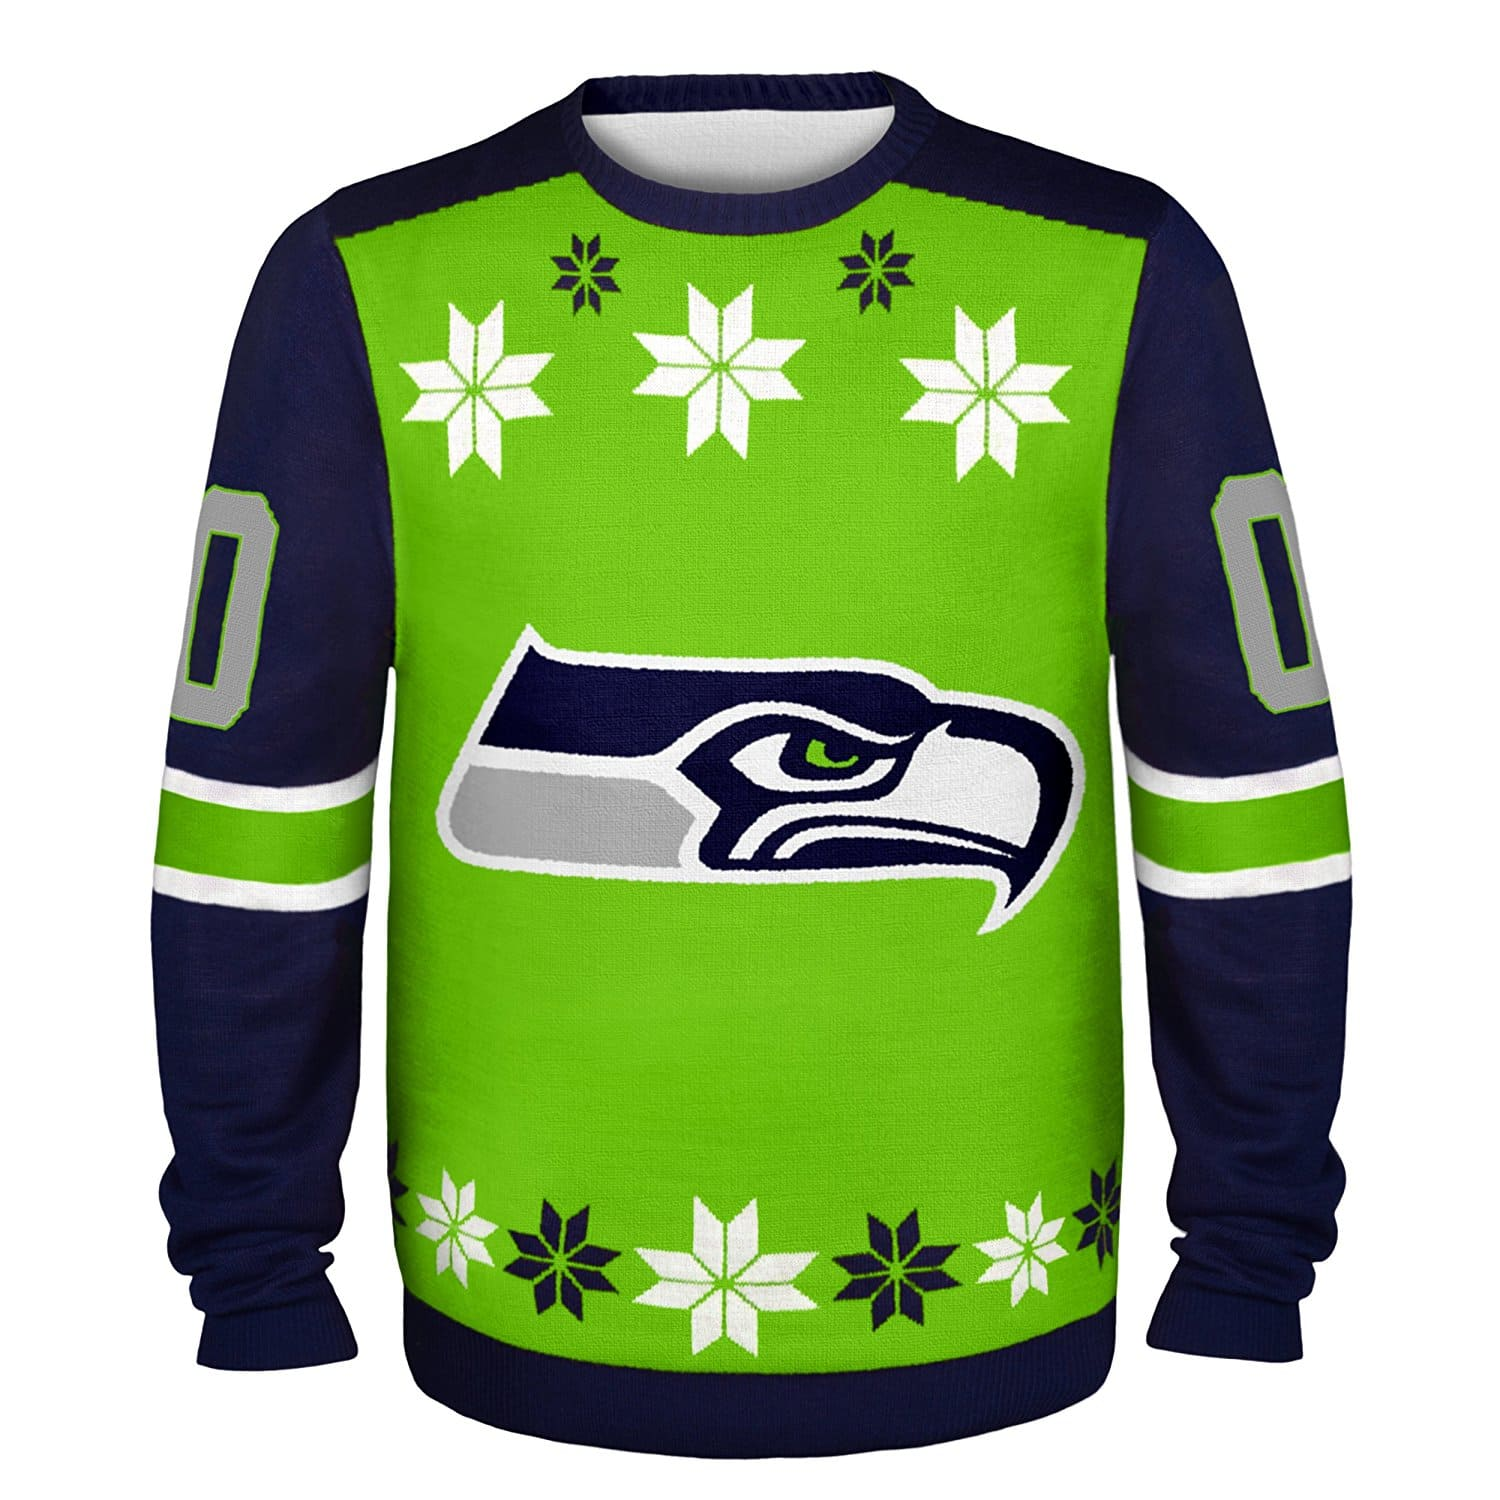 Ugly Christmas Sweaters On Sale - Including Seahawks Ugly ...